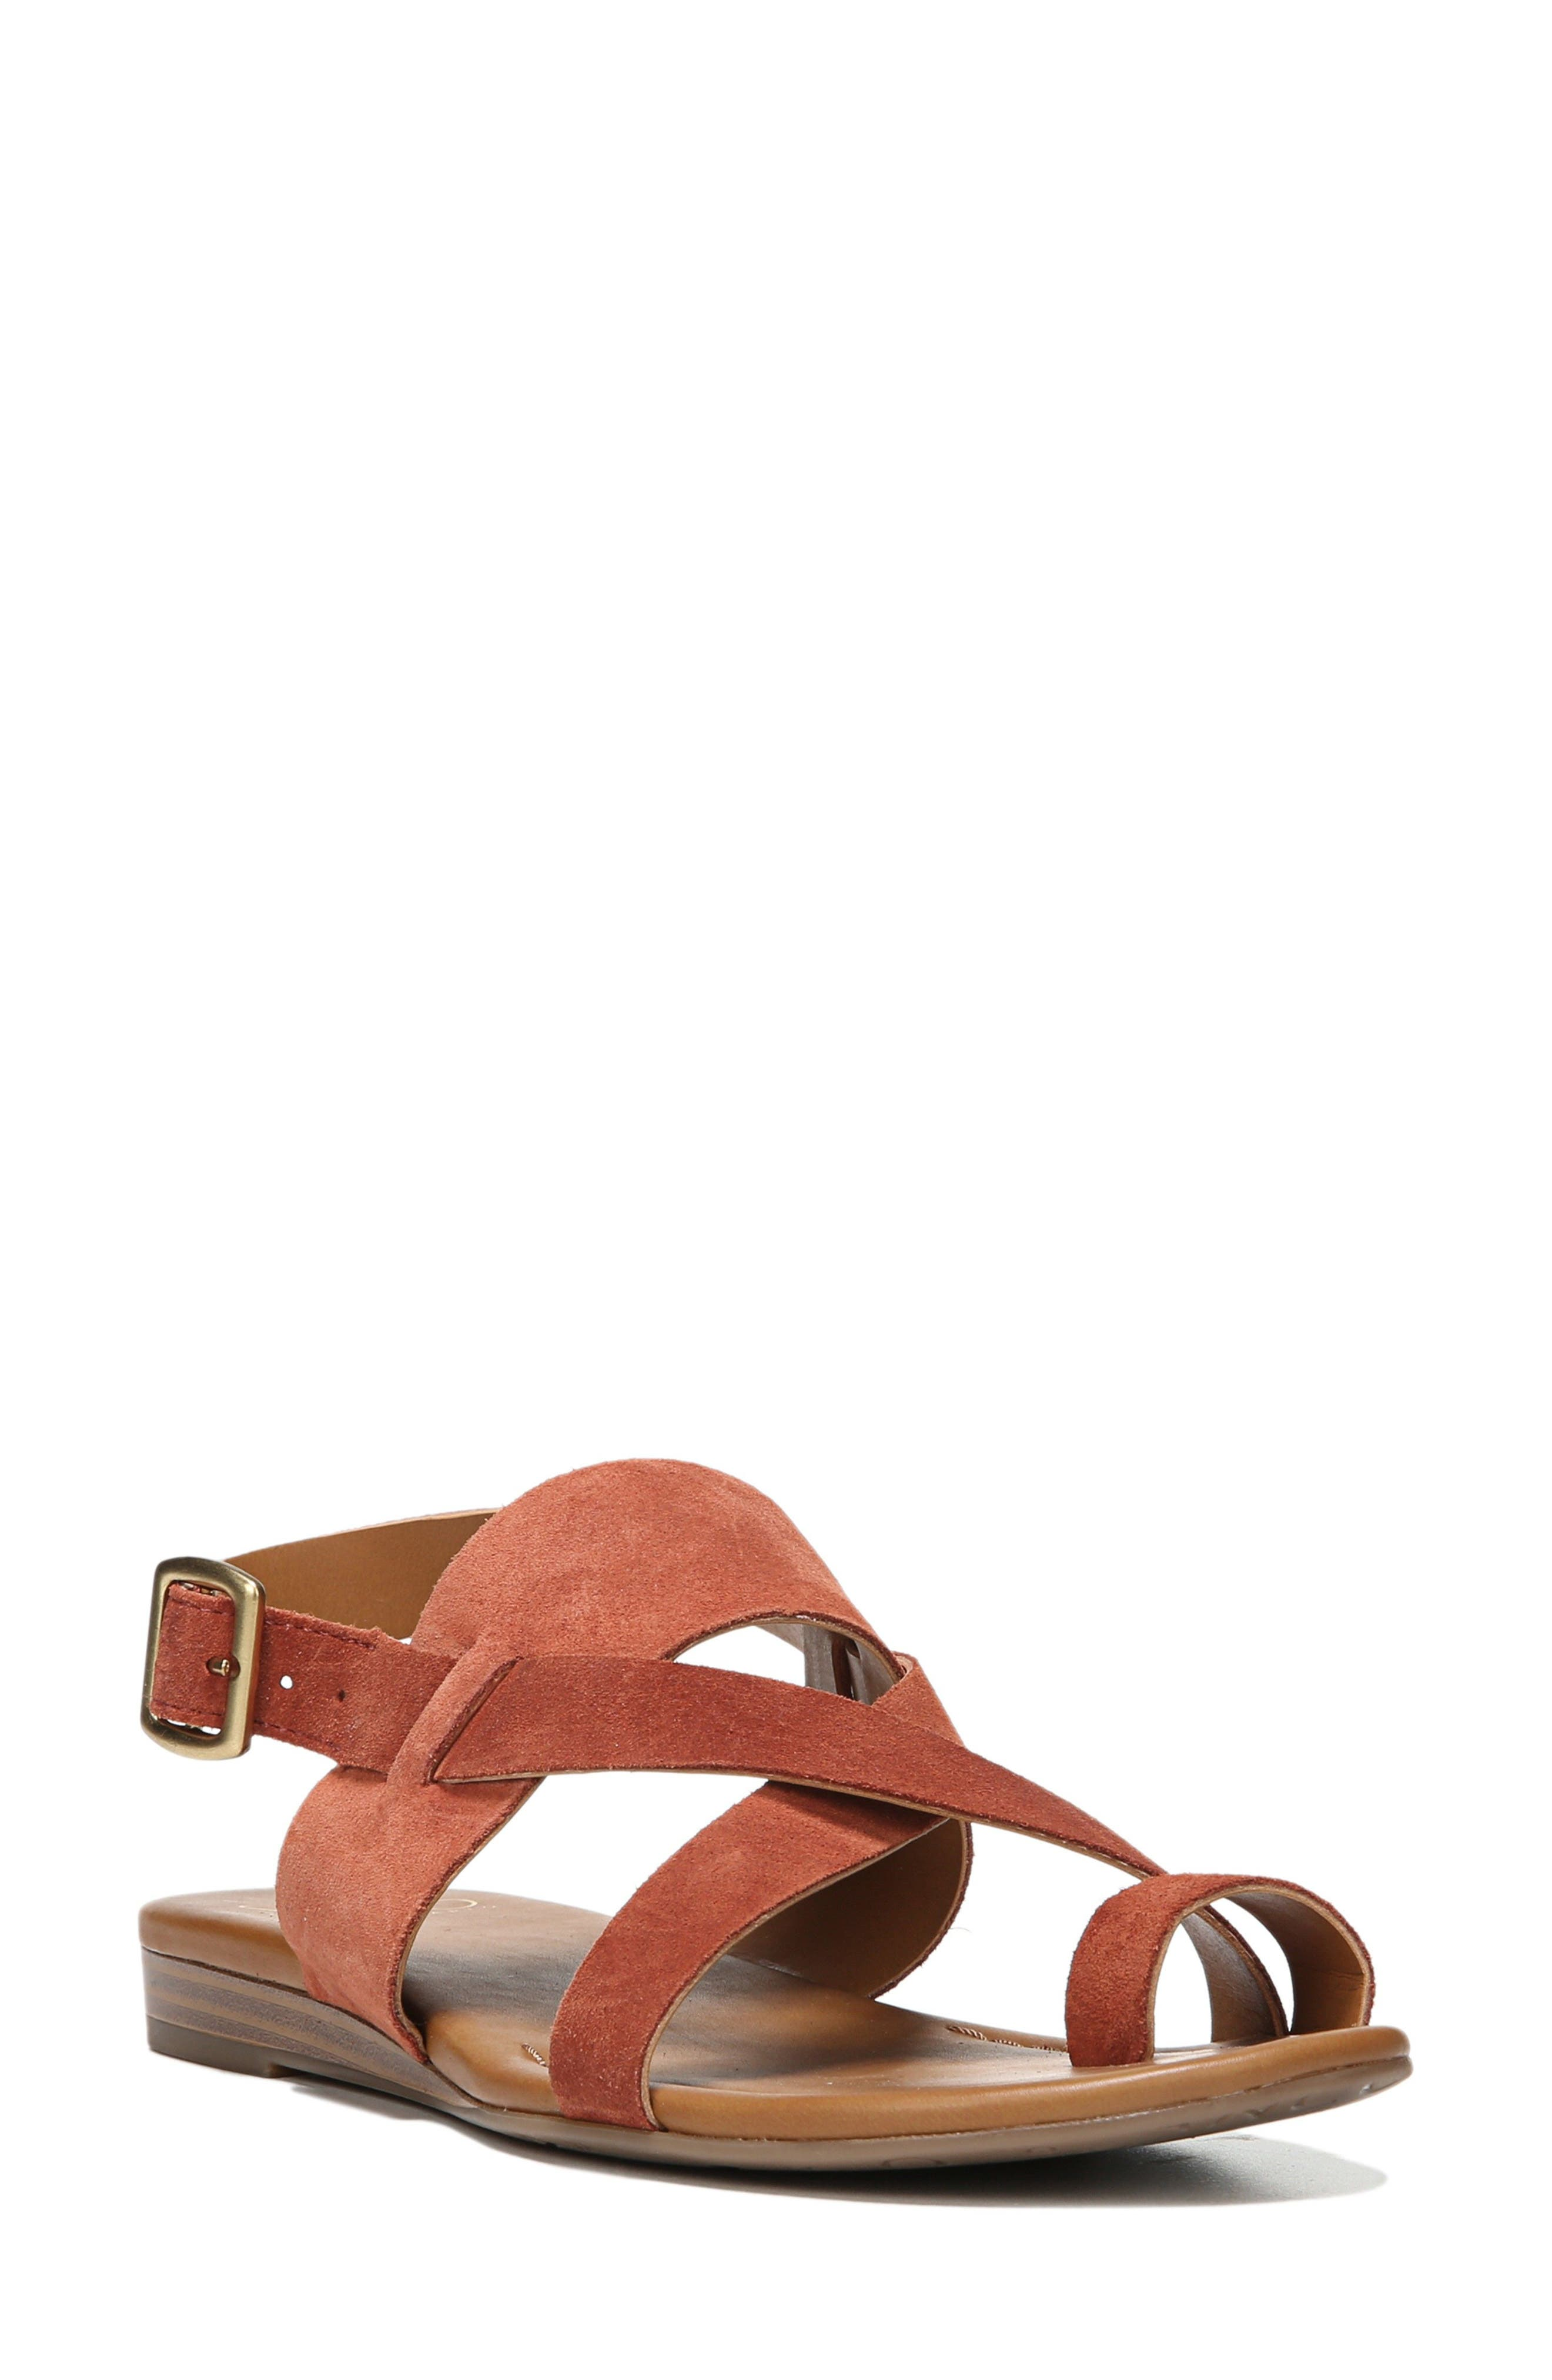 Alternate Image 1 Selected - SARTO by Franco Sarto Gia Sandal (Women)